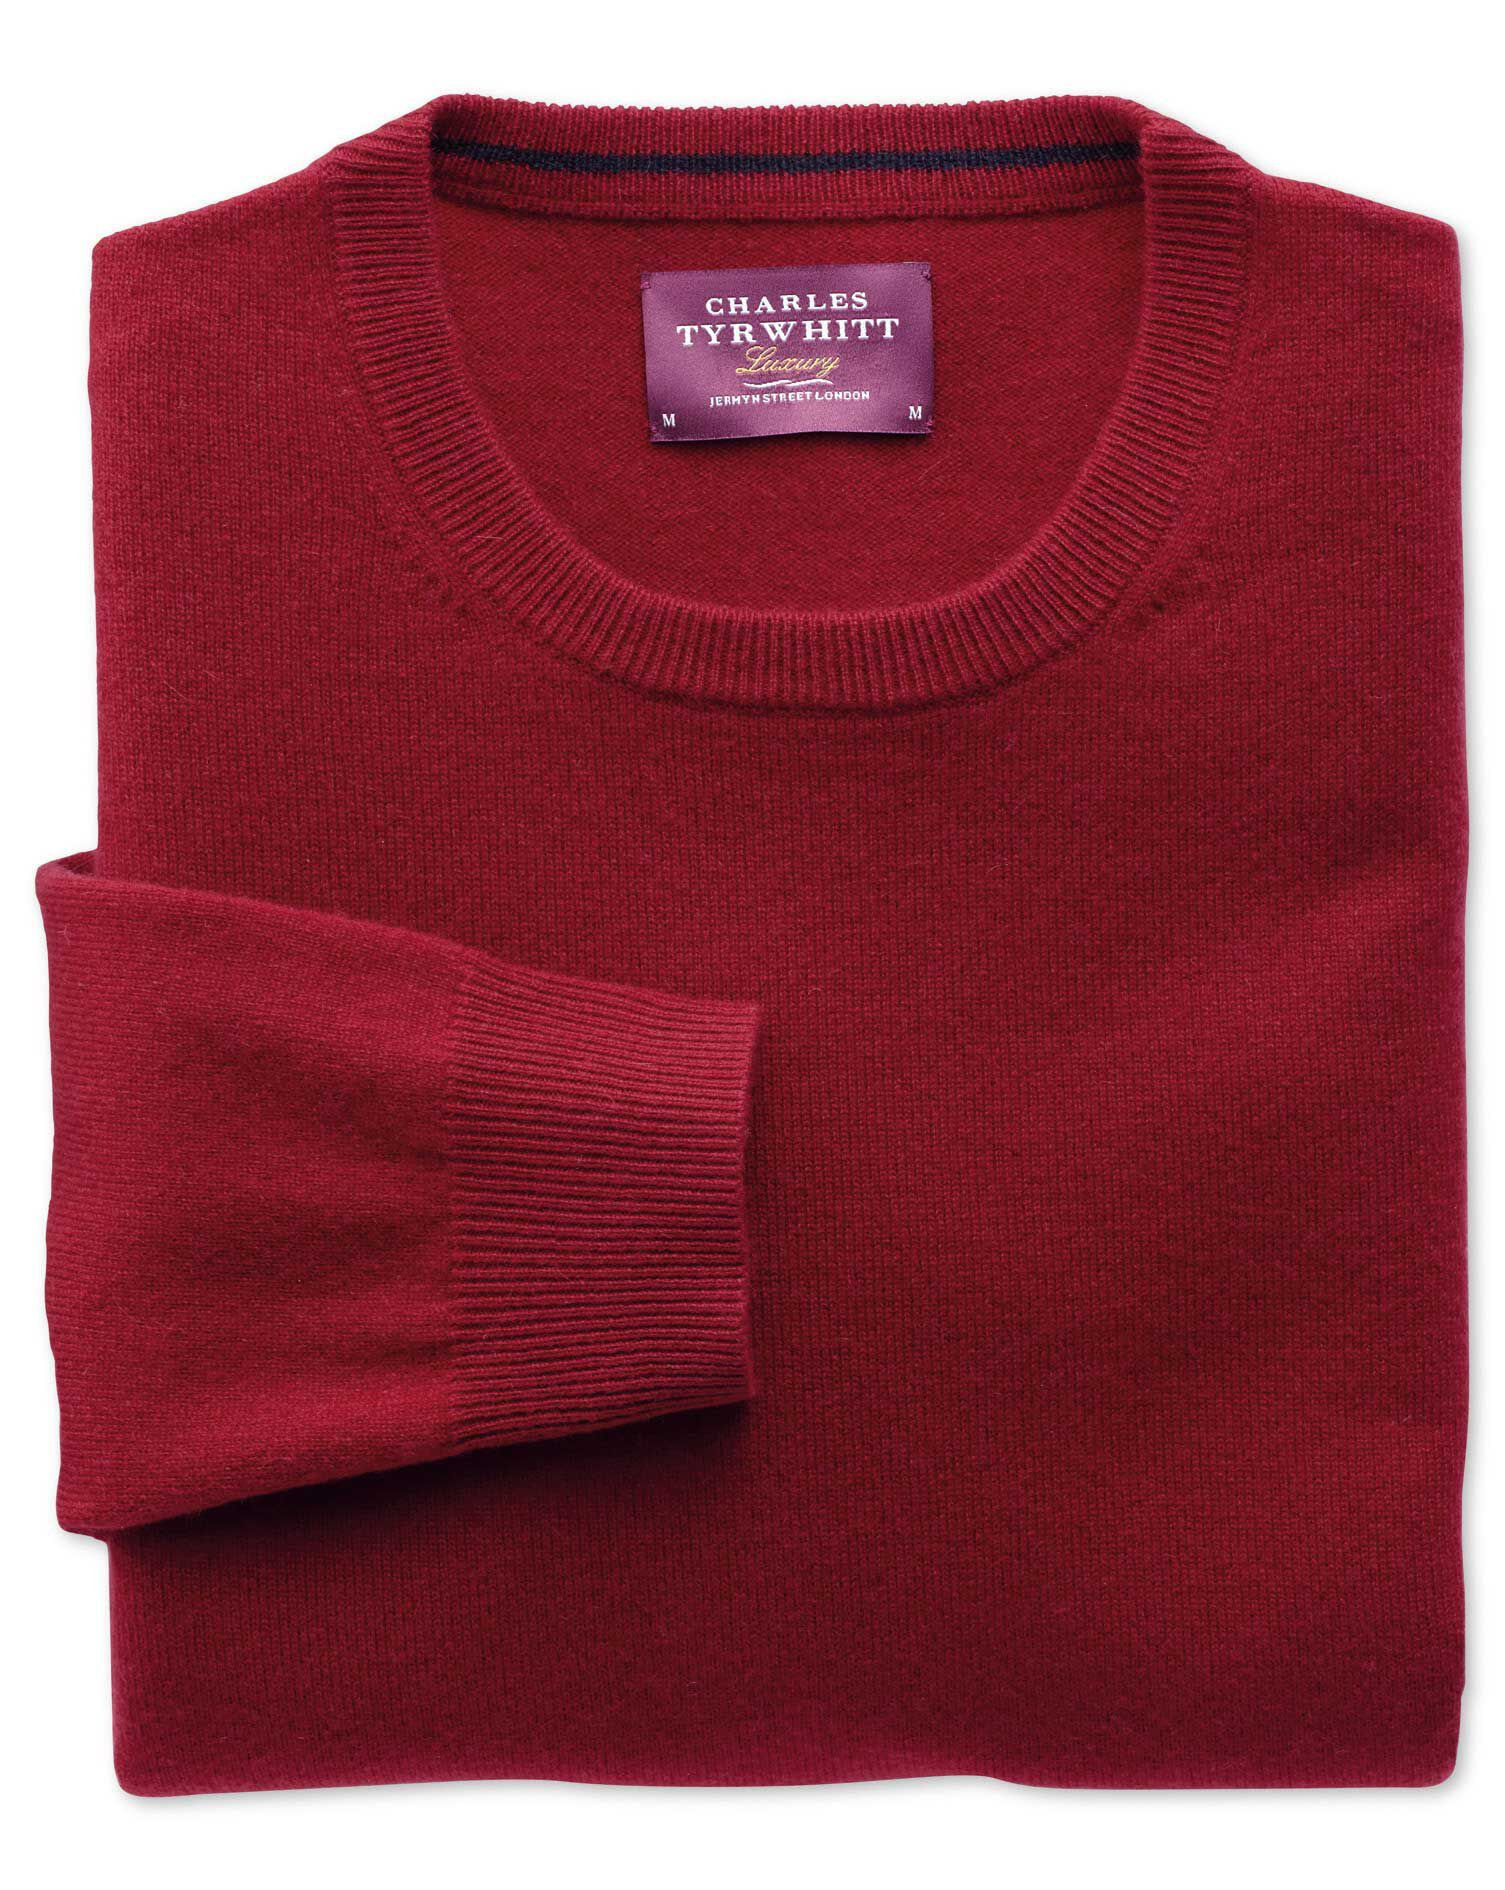 Red Cashmere Crew Neck Jumper Size XL by Charles Tyrwhitt